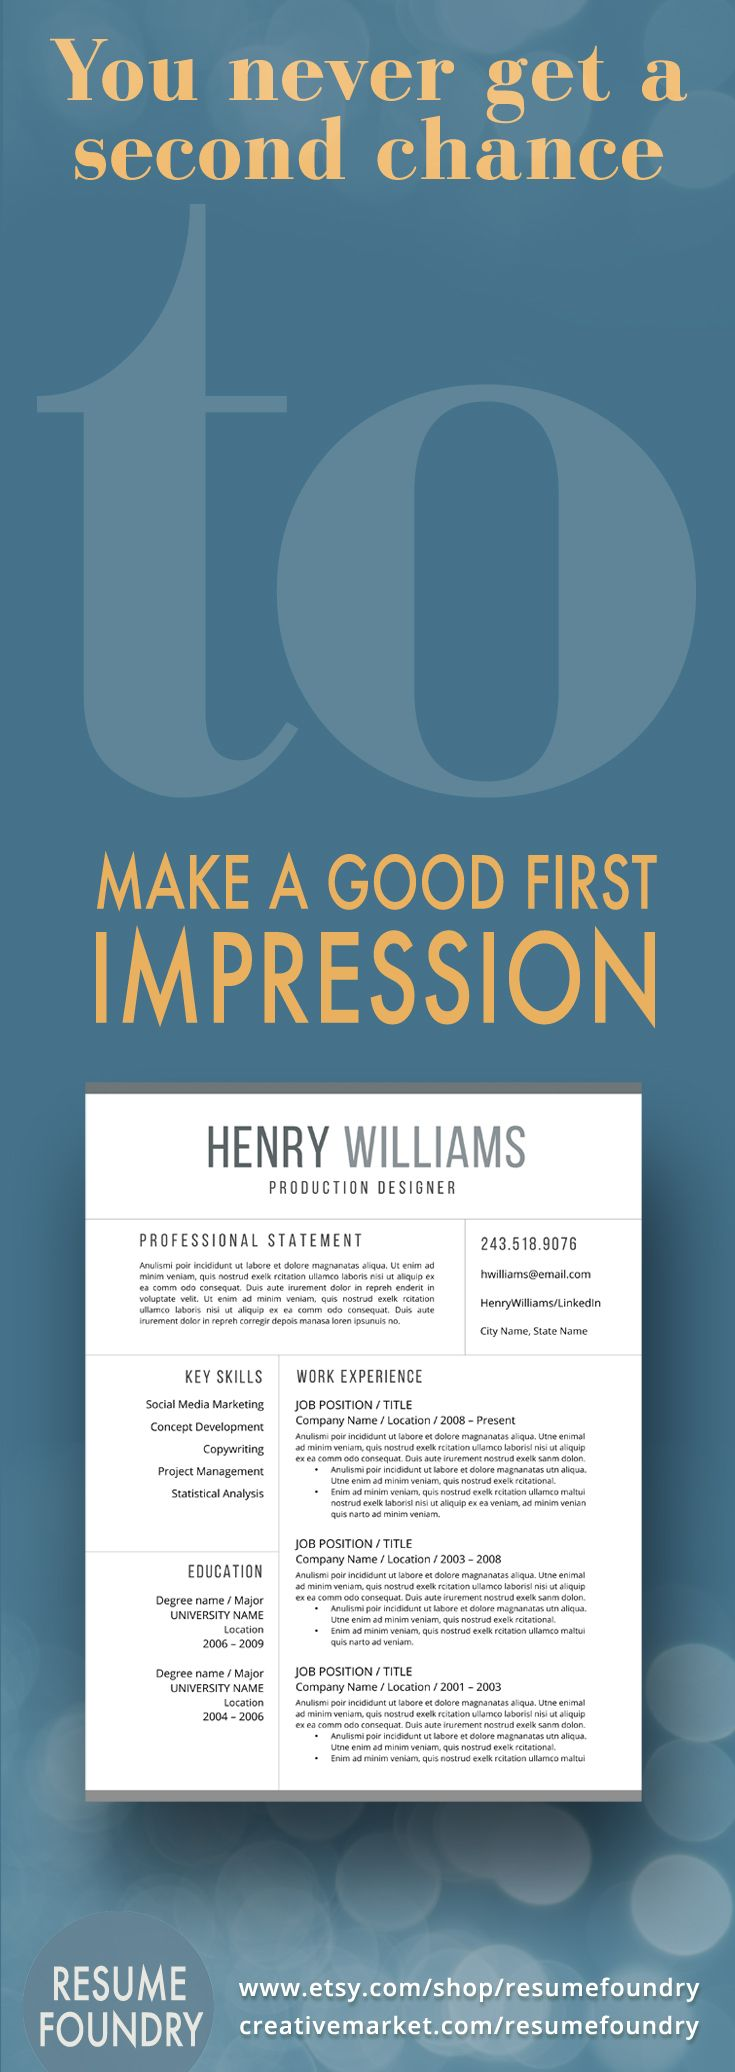 Make your first impression count with a